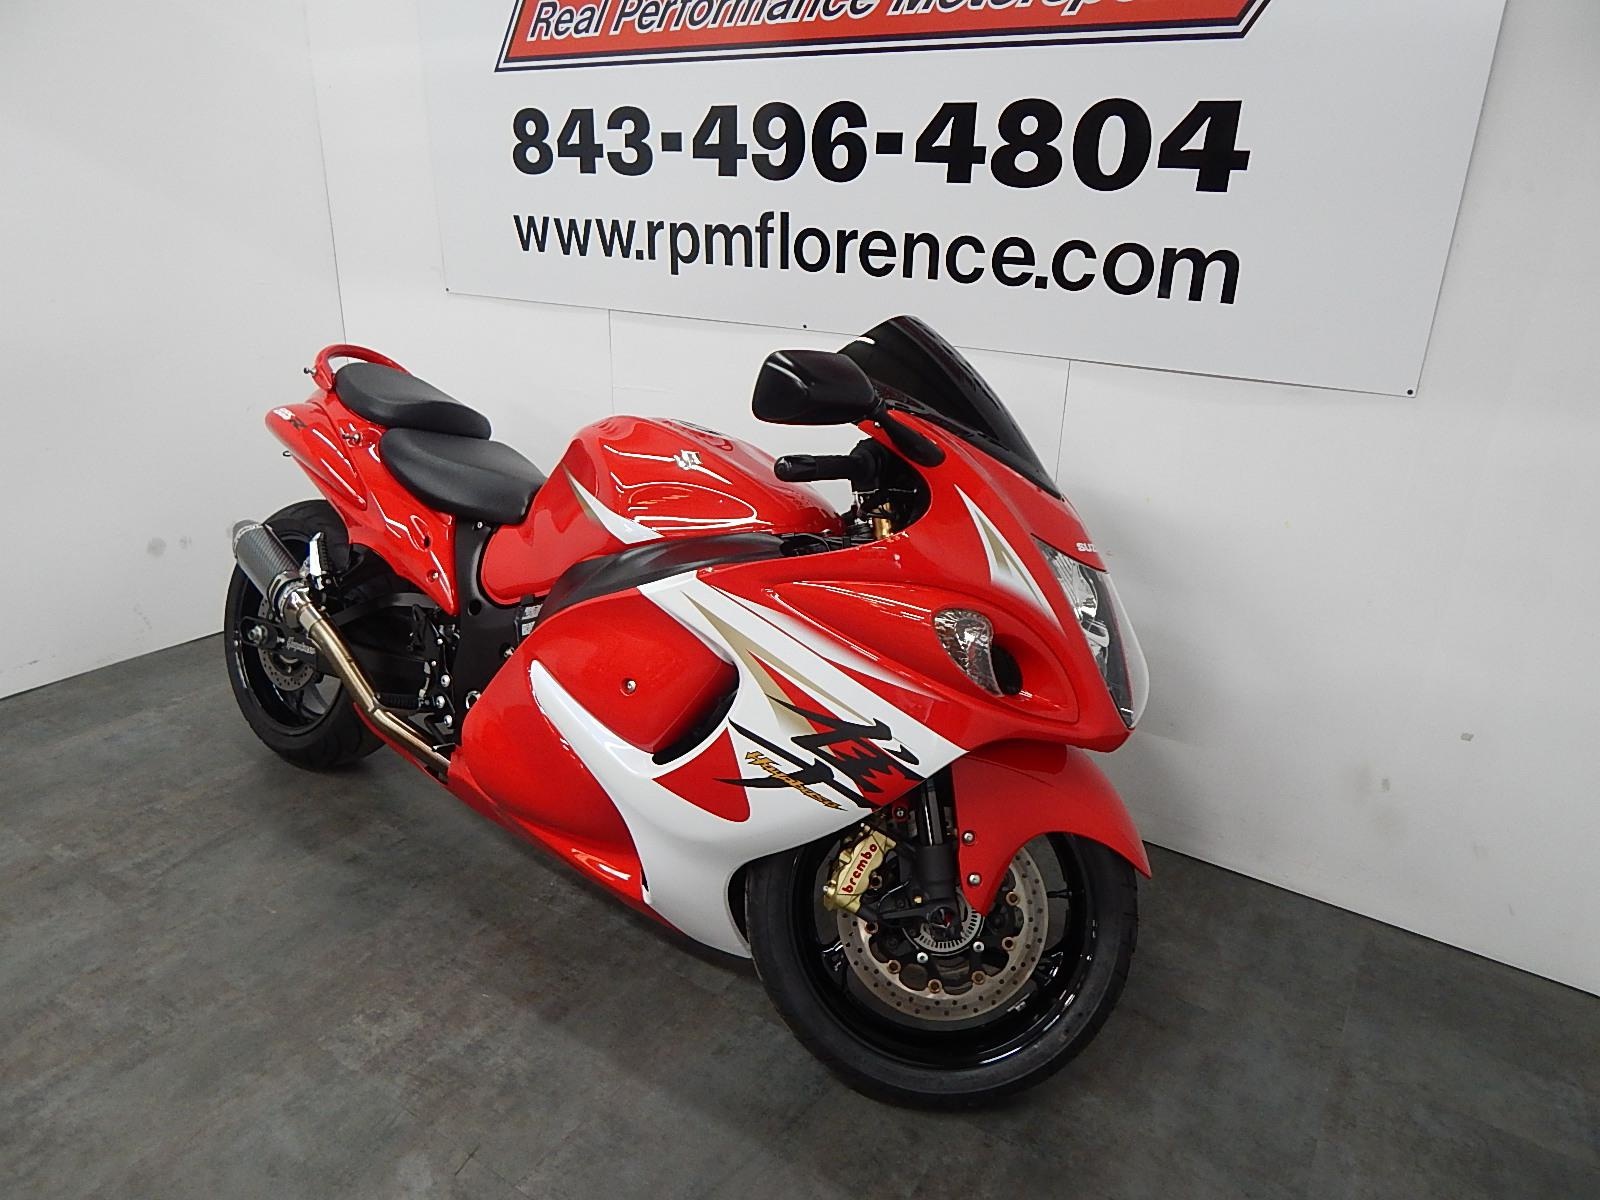 2014 Suzuki Hayabusa for sale in Florence, SC | Real Performance ...